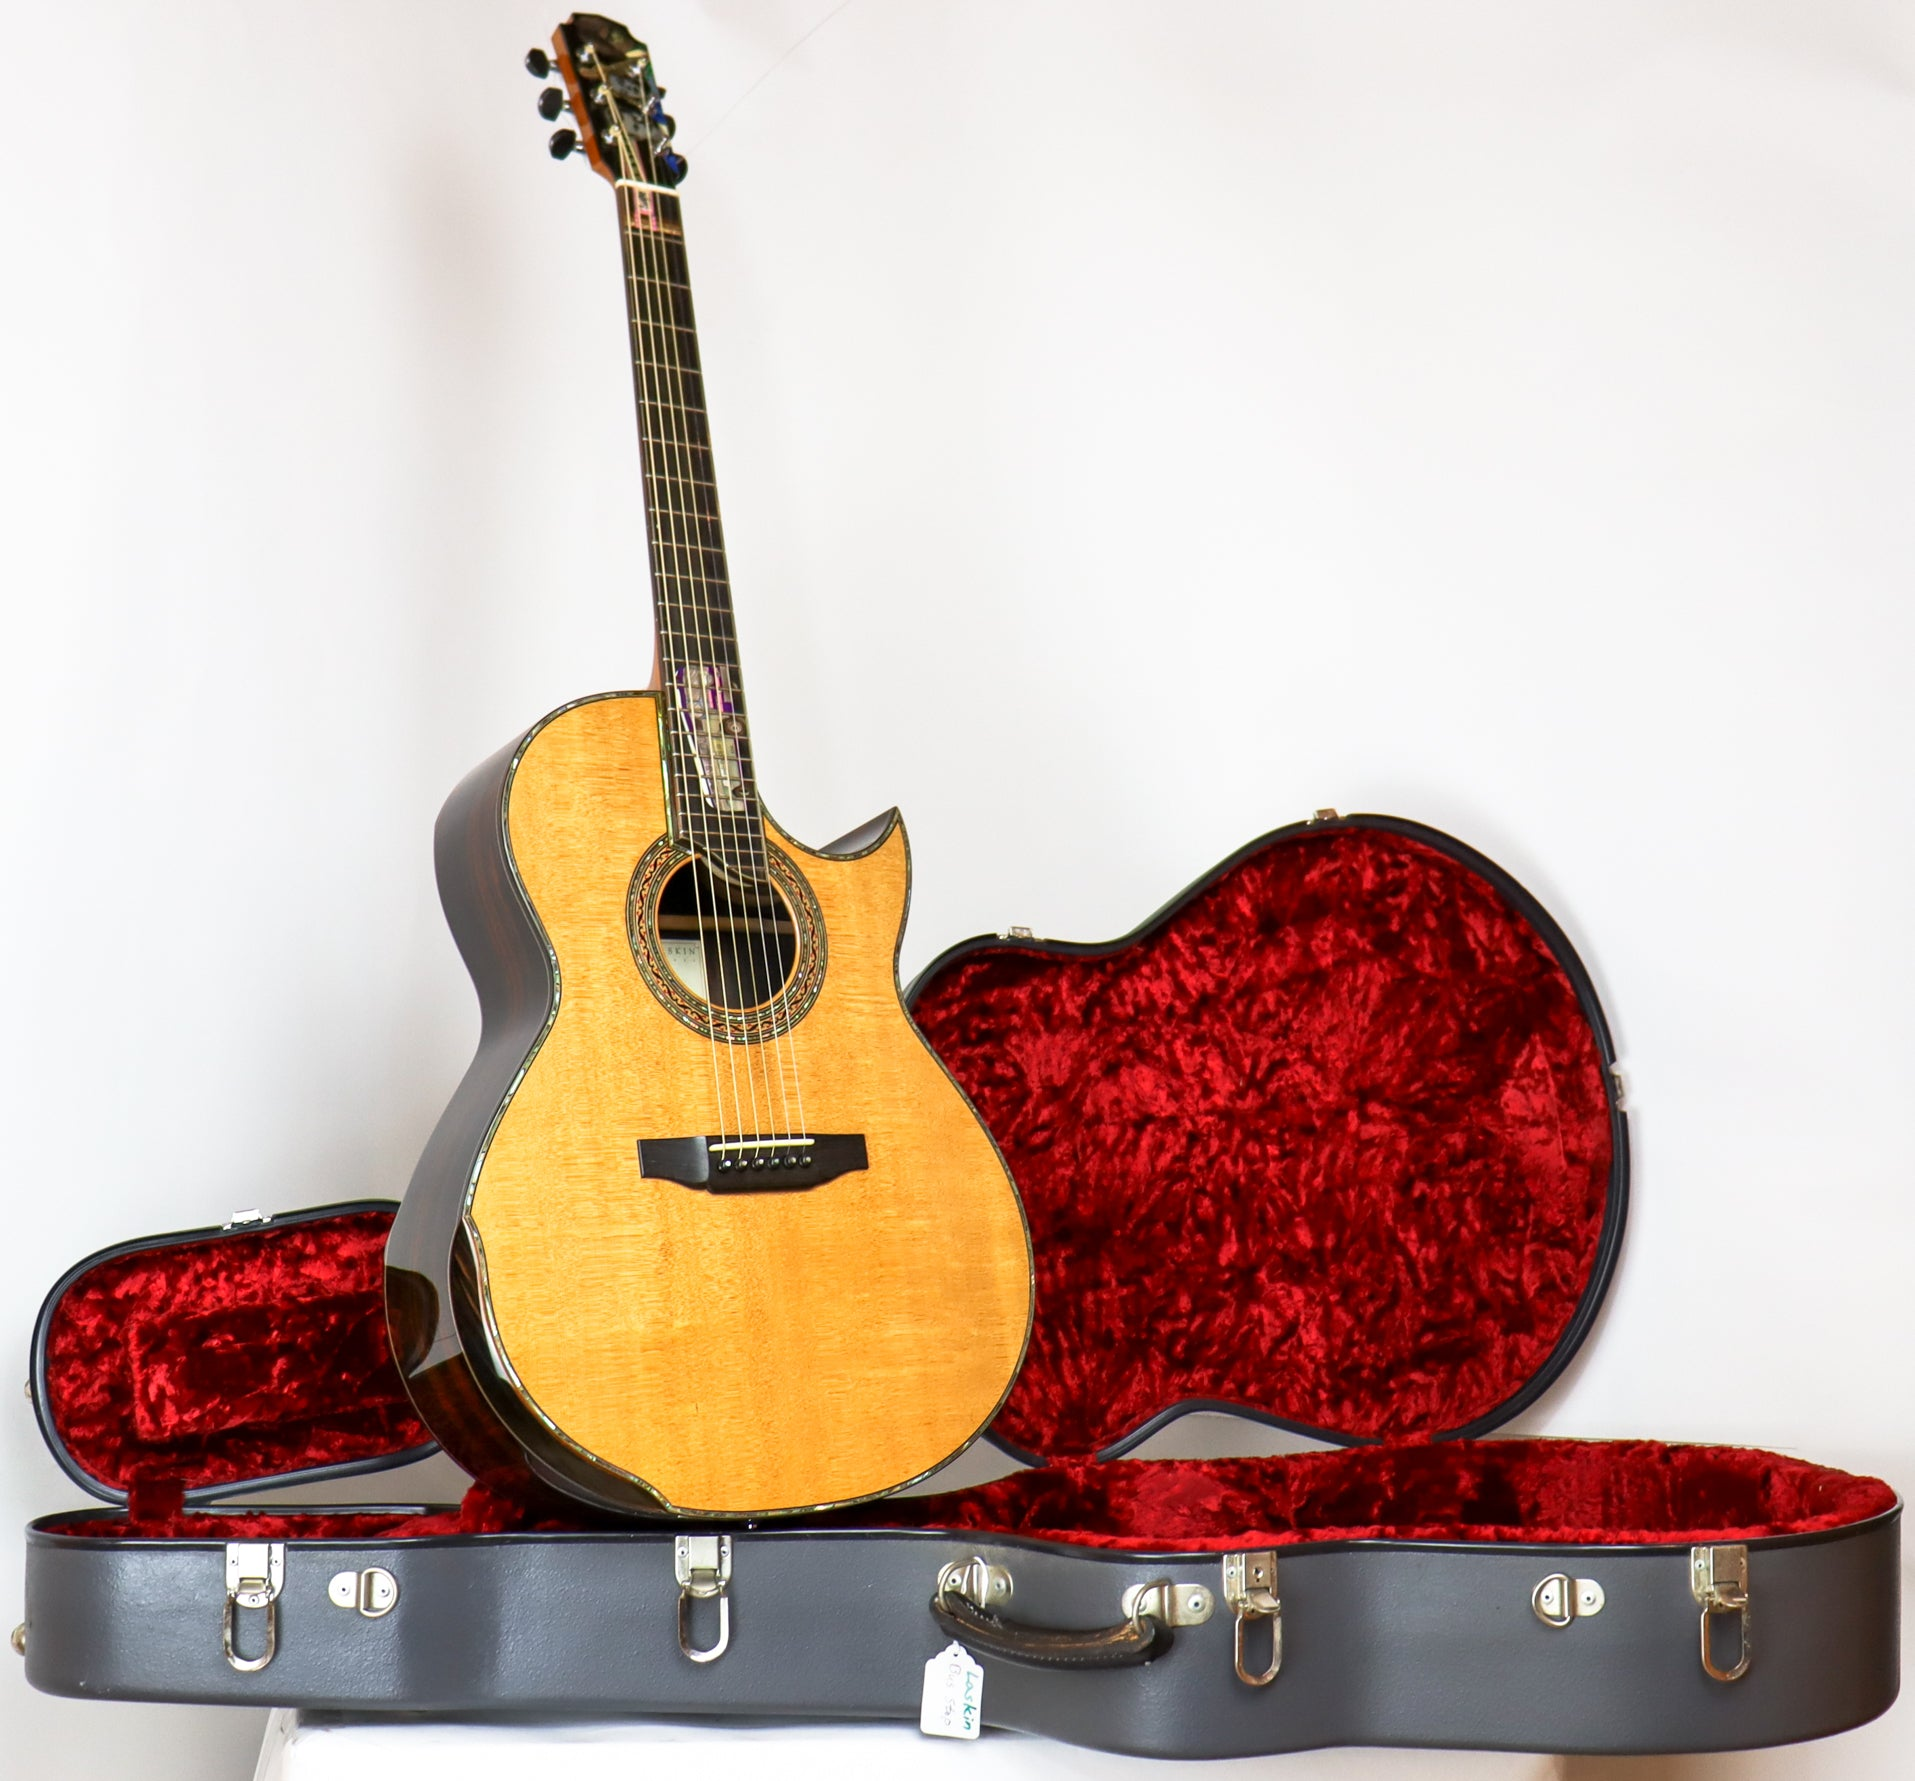 Laskin 1996 Custom Acoustic with Pearl Inlays SN: #311295